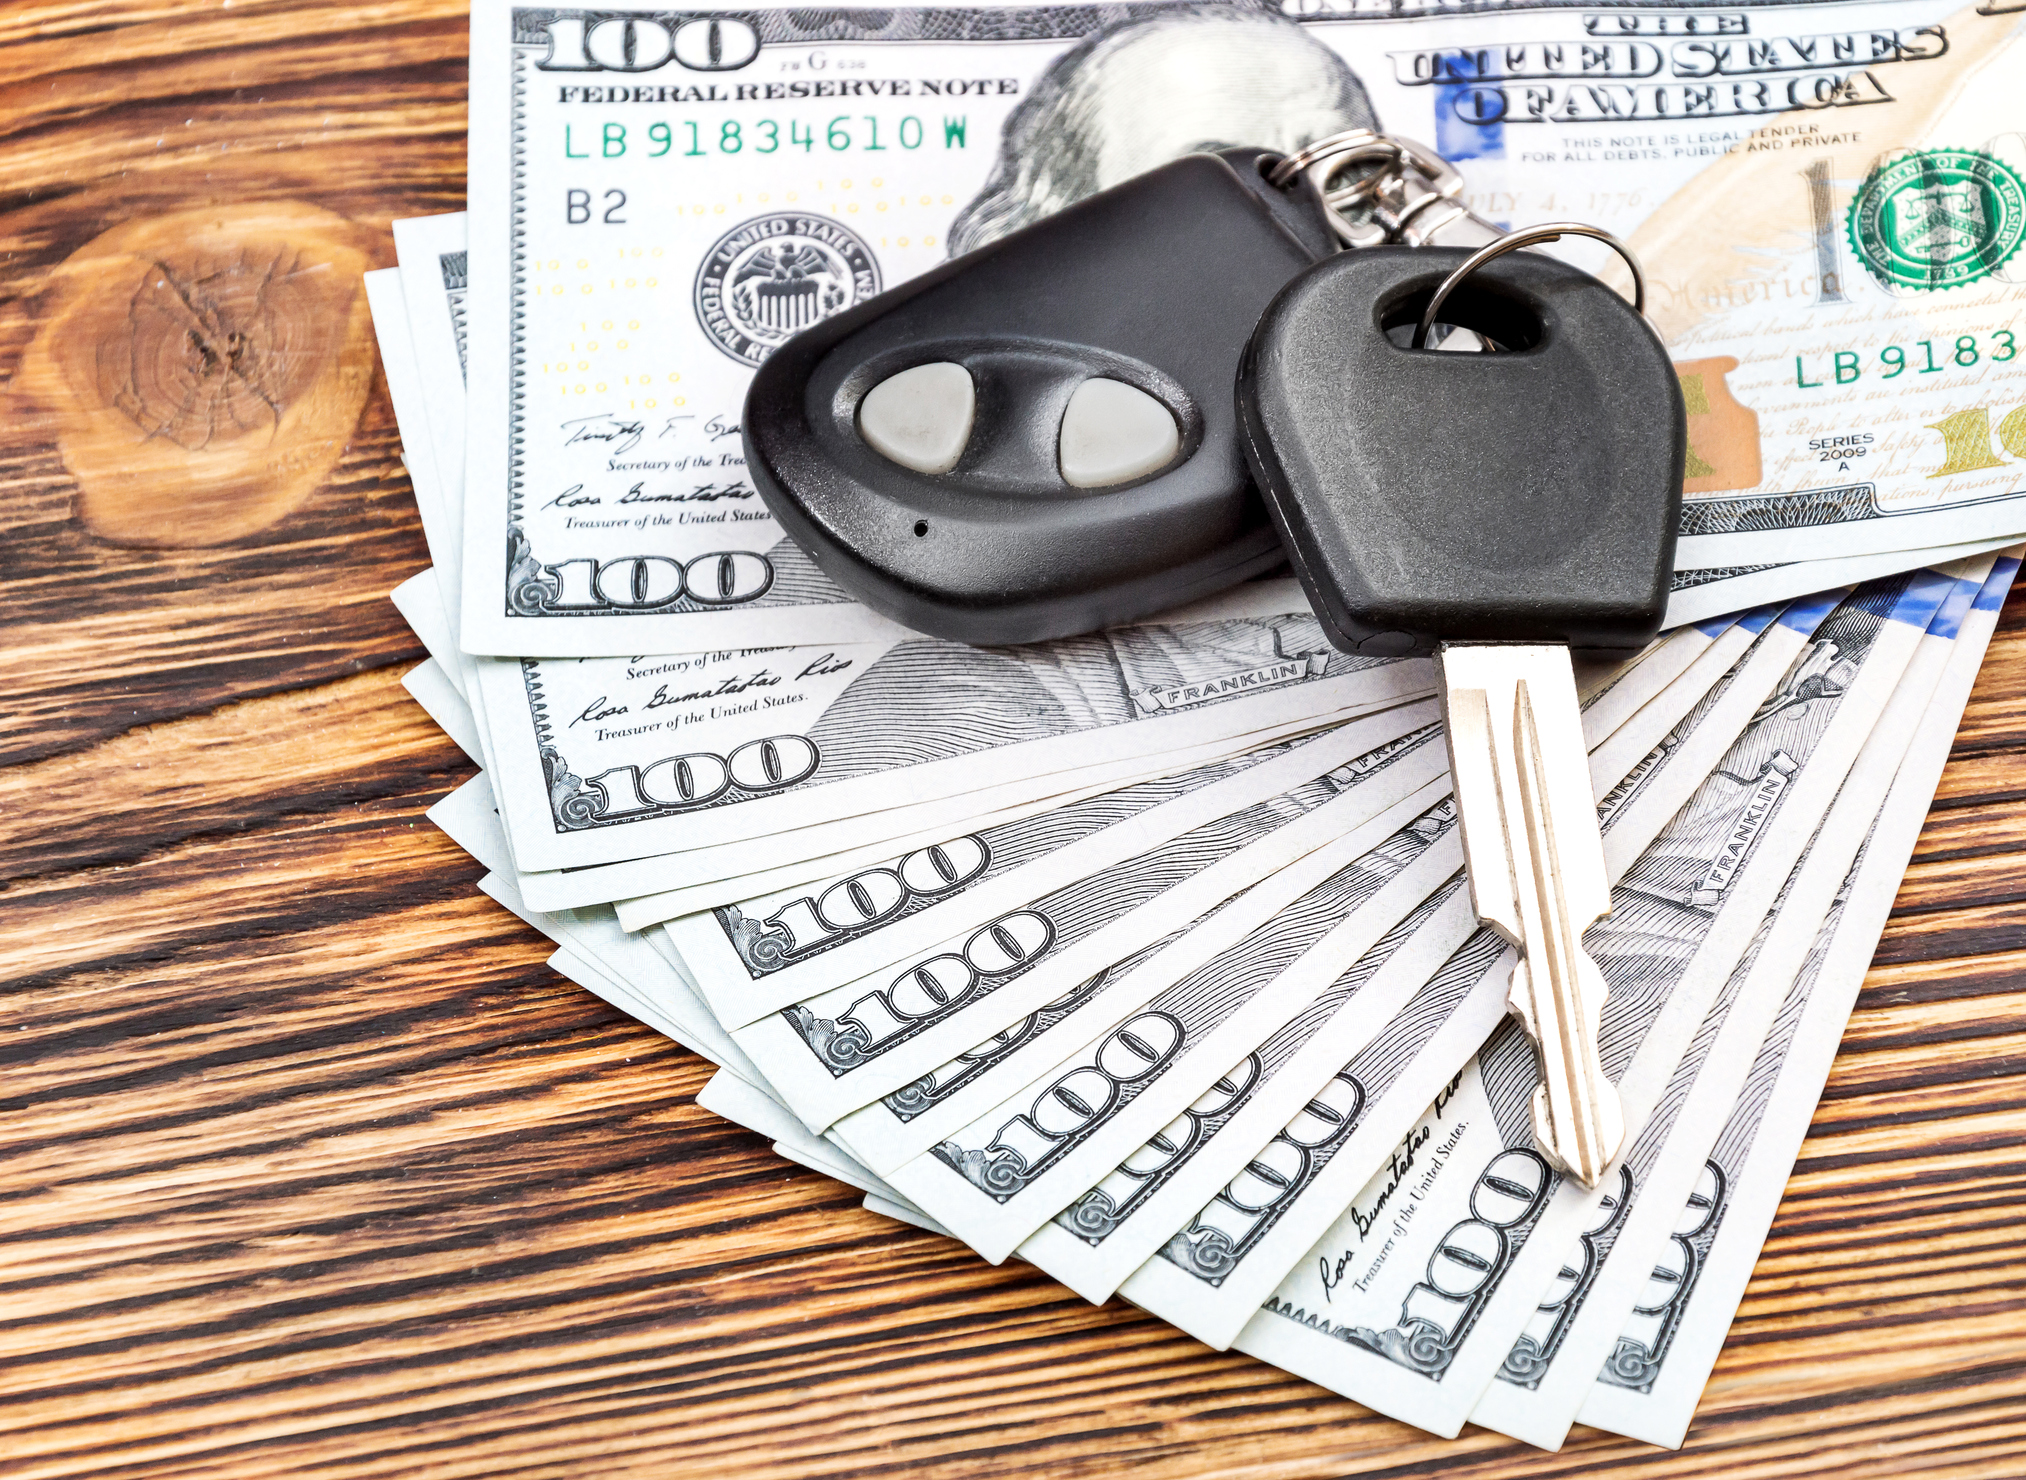 Car repairs can cost a lot of money.